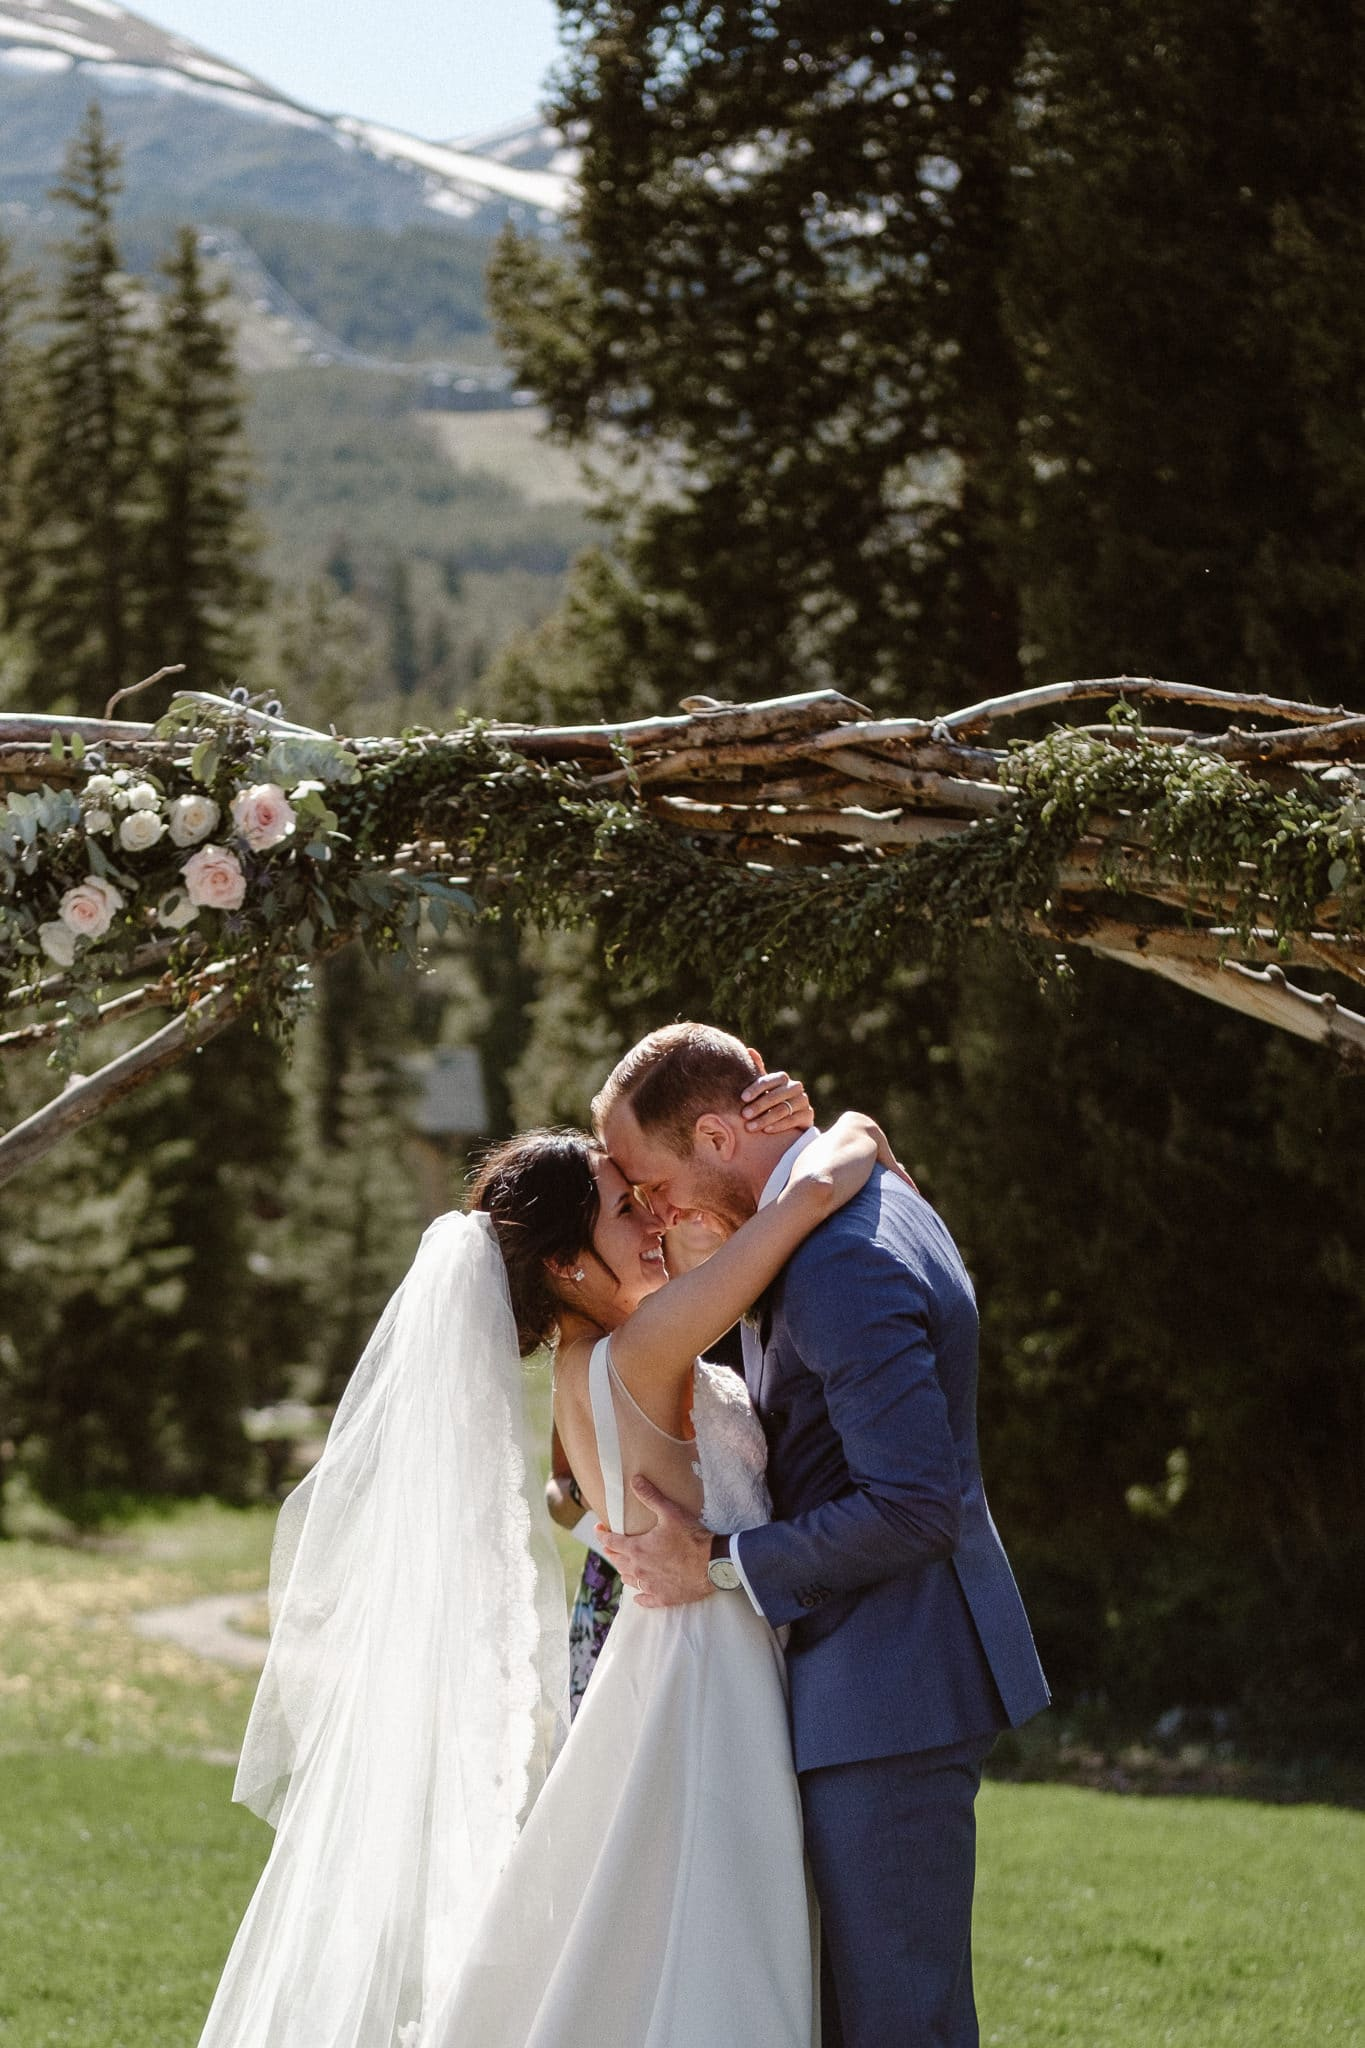 Bride and groom first kiss at Breckenridge Nordic Center wedding, Summit County wedding photographer